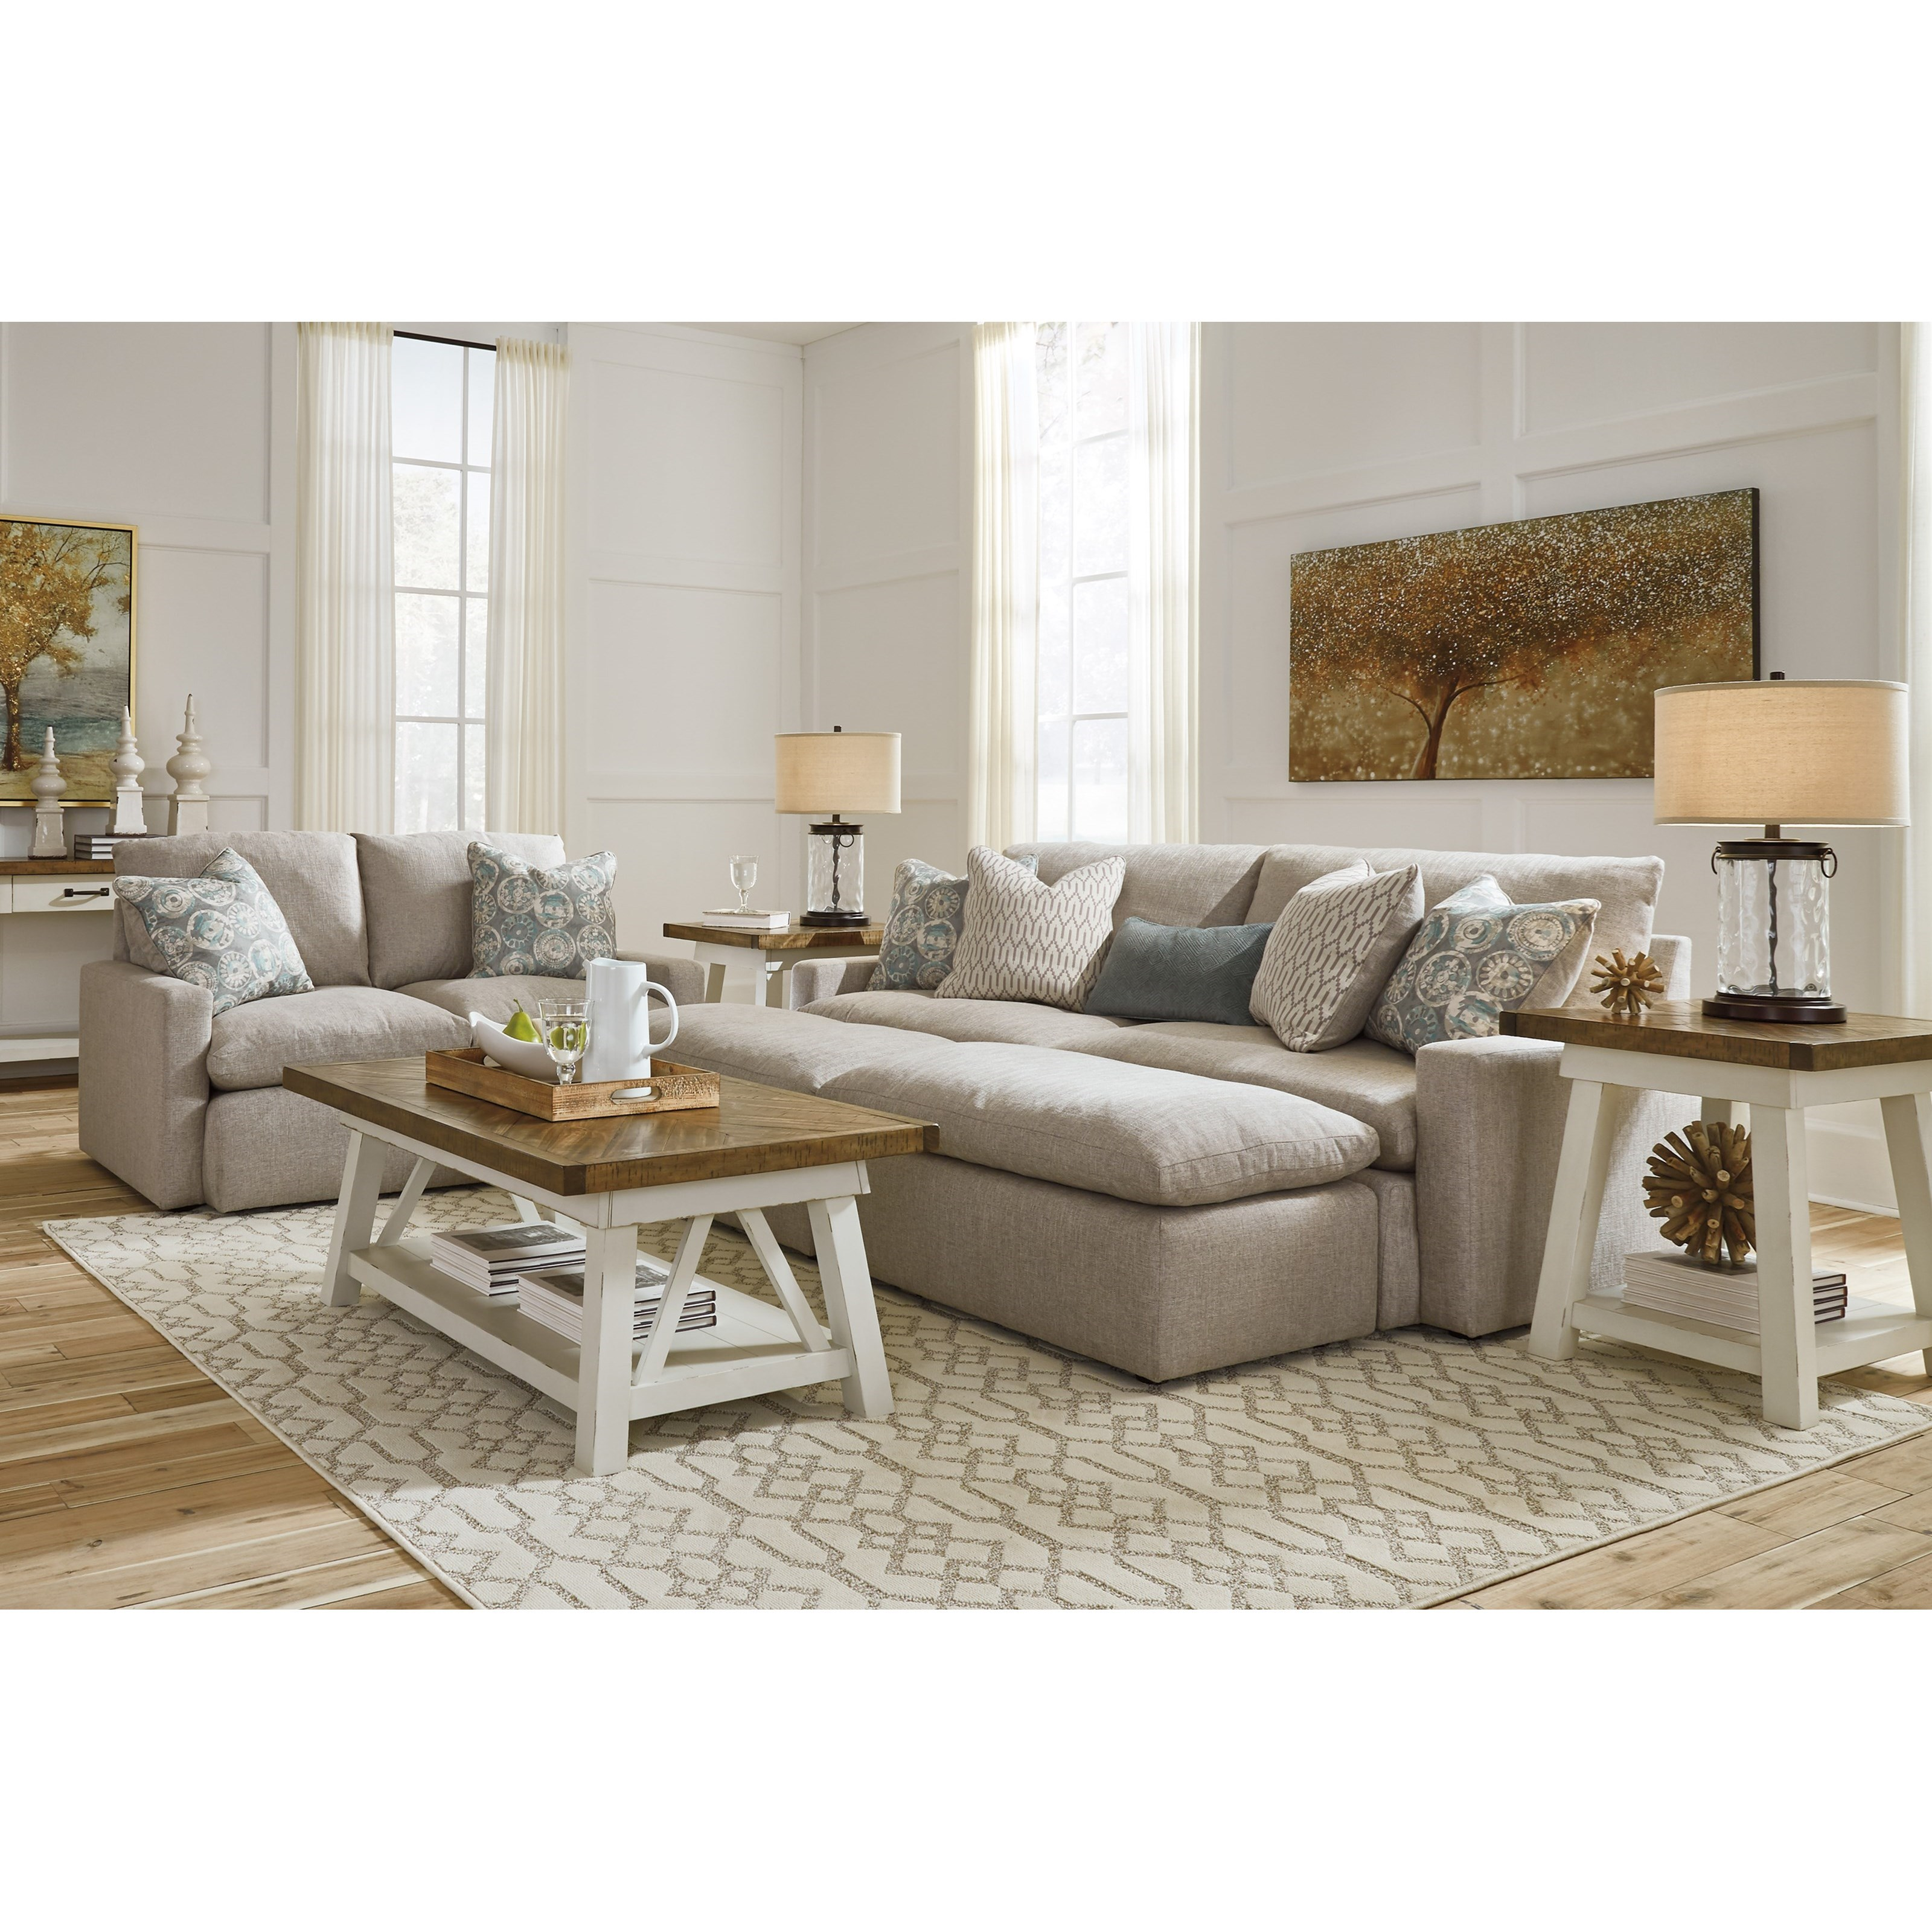 Ashley Furniture Slc: Benchcraft Melilla Pit Sectional Sofa With 2 Accent